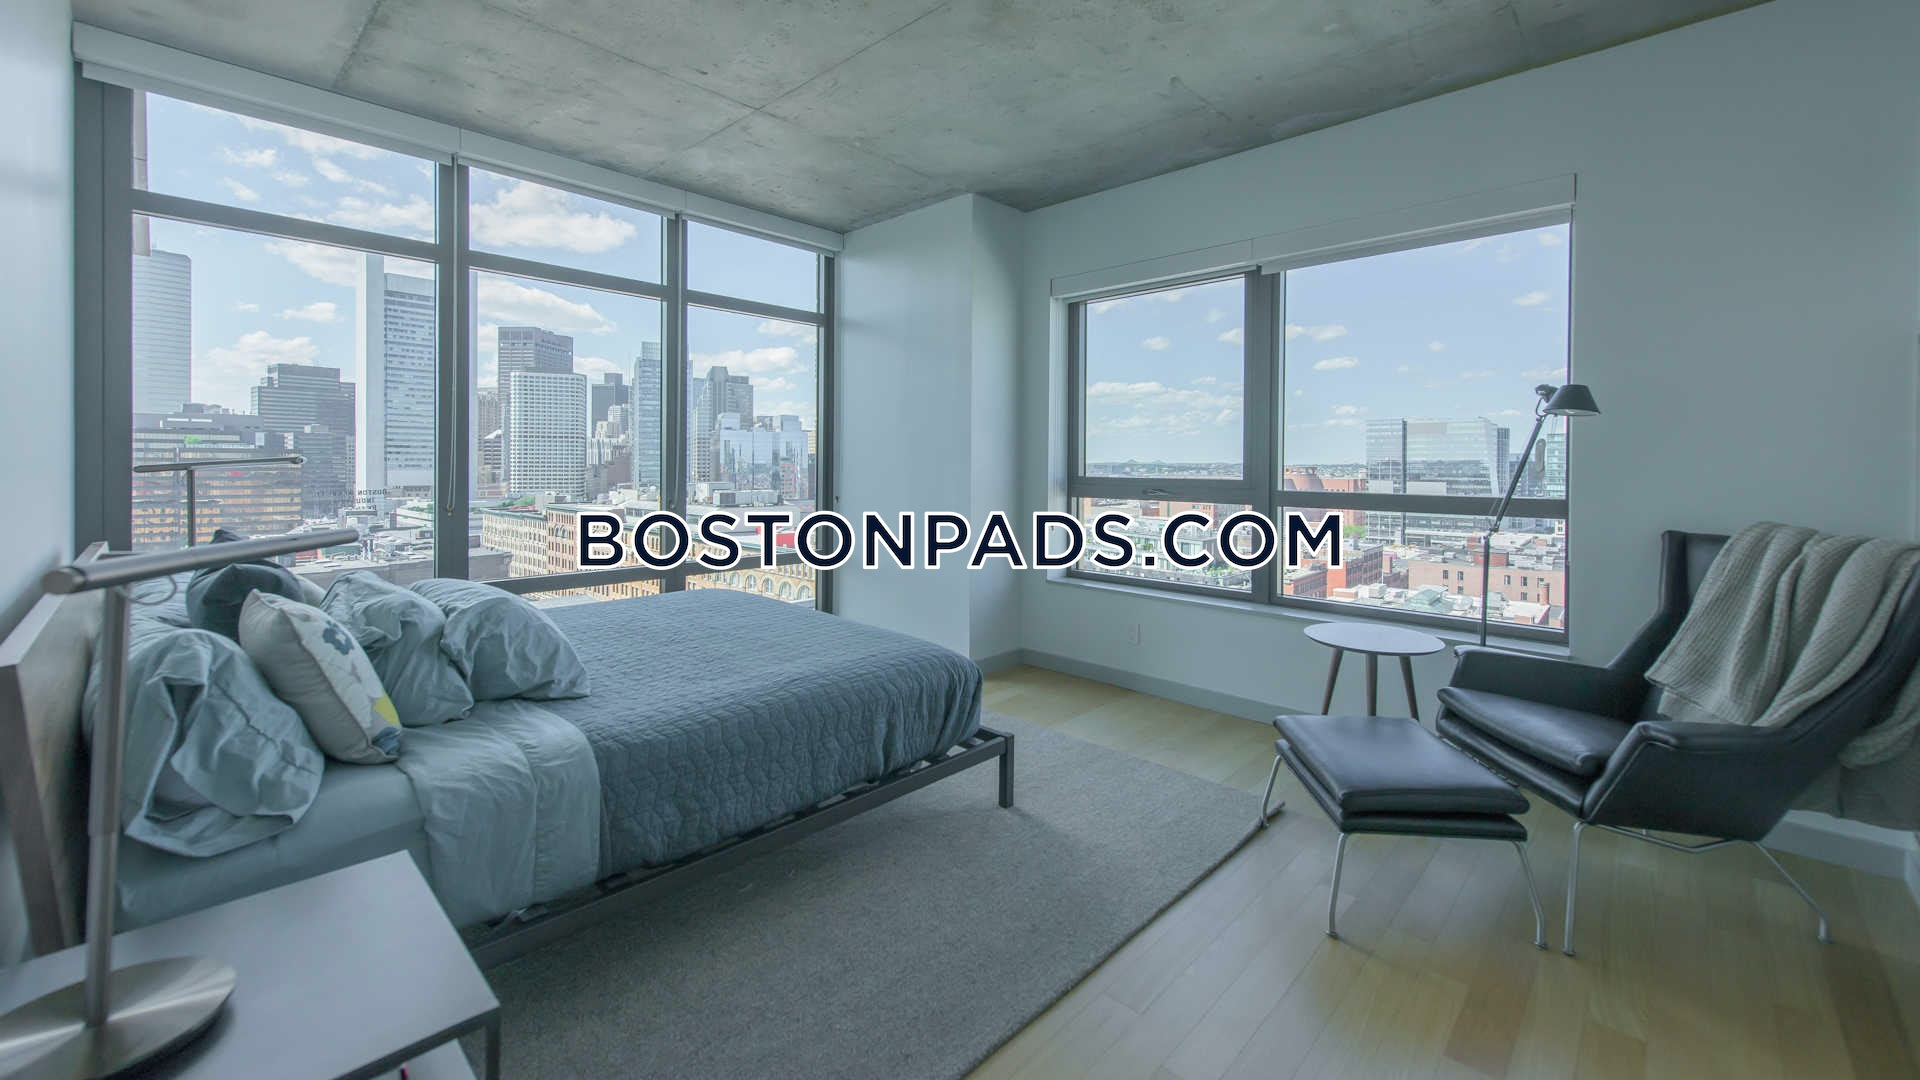 TRULY AMAZING 1 BED 1 BATH UNIT-LUXURY BUILDING CLOSE BY THE SEAPORT/ WATERFRONT  - Boston - Seaport/waterfront $2,915